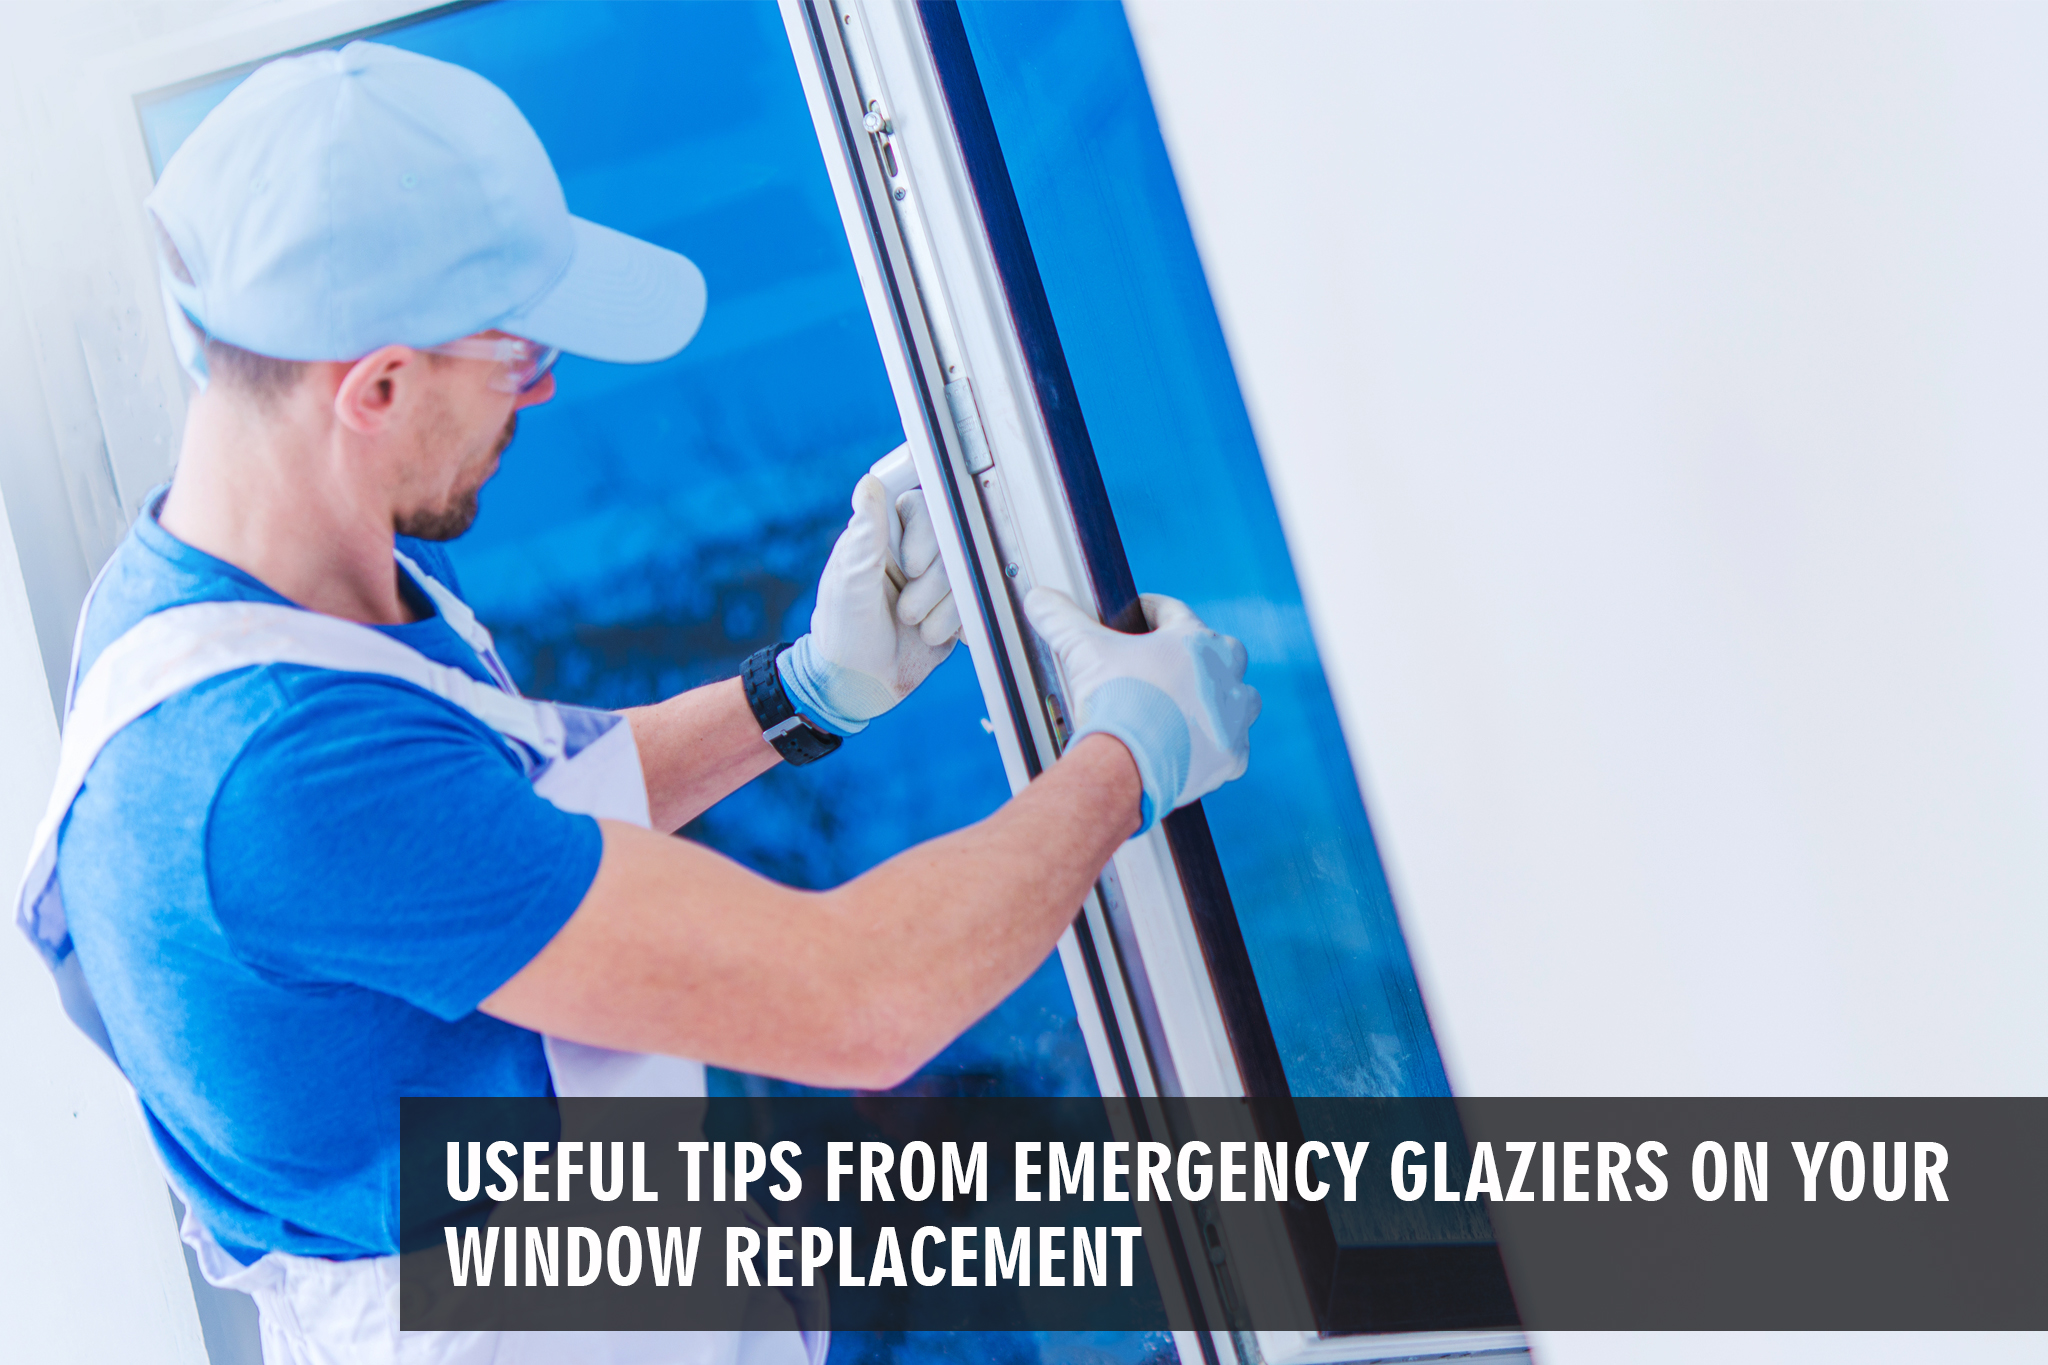 Useful Tips from Emergency Glaziers on Your Window Replacement By Glaziers London